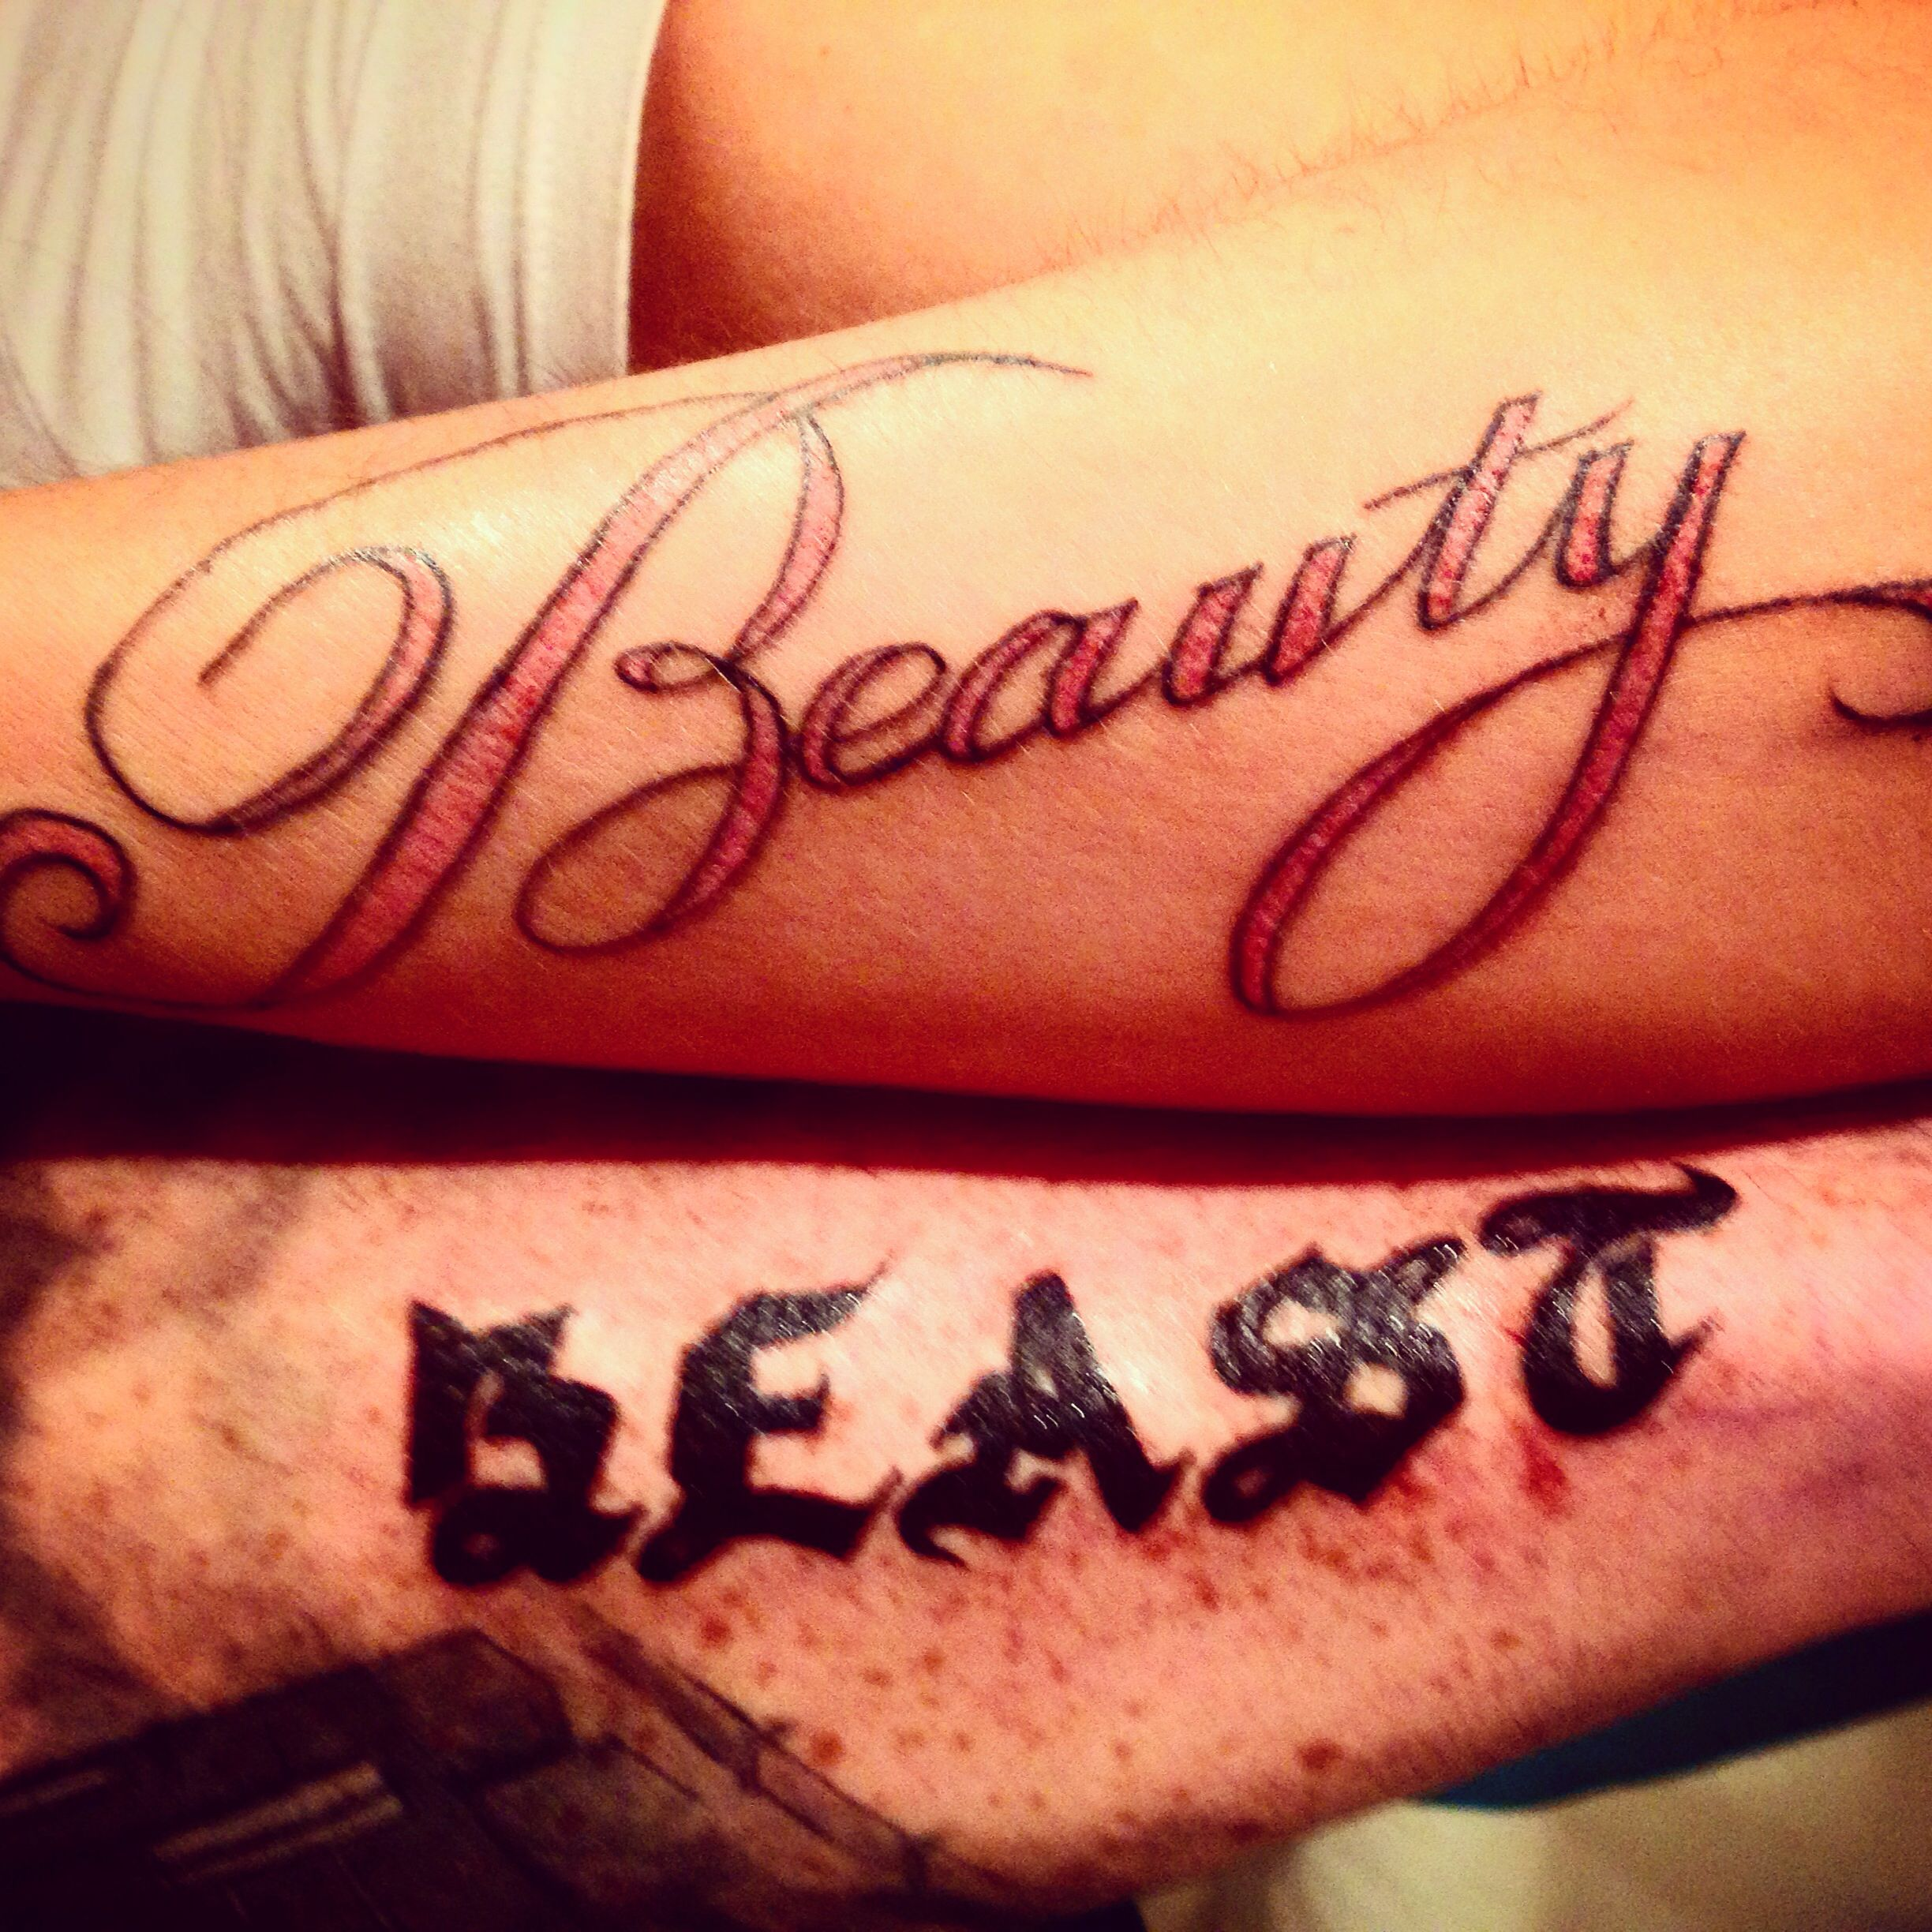 Beauty and the Beast tattoo | Tats | Pinterest | Tattoo ...